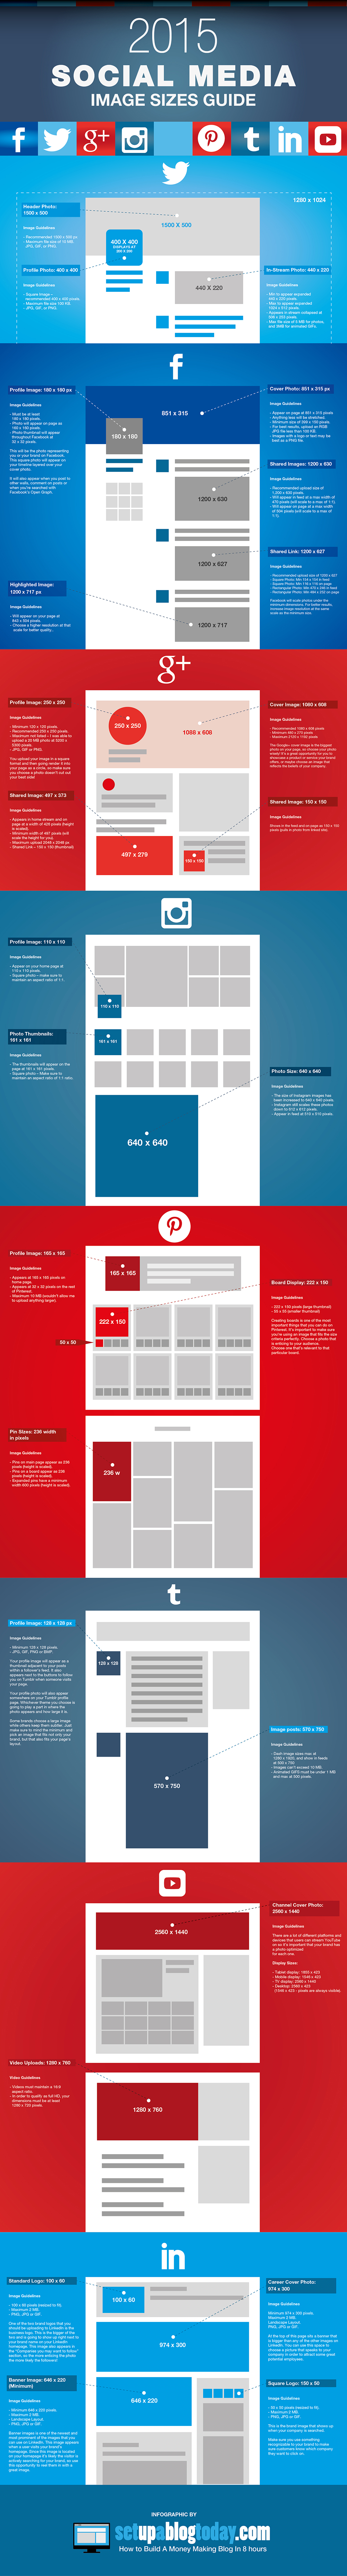 2015-social-media-image-sizes-infographic1